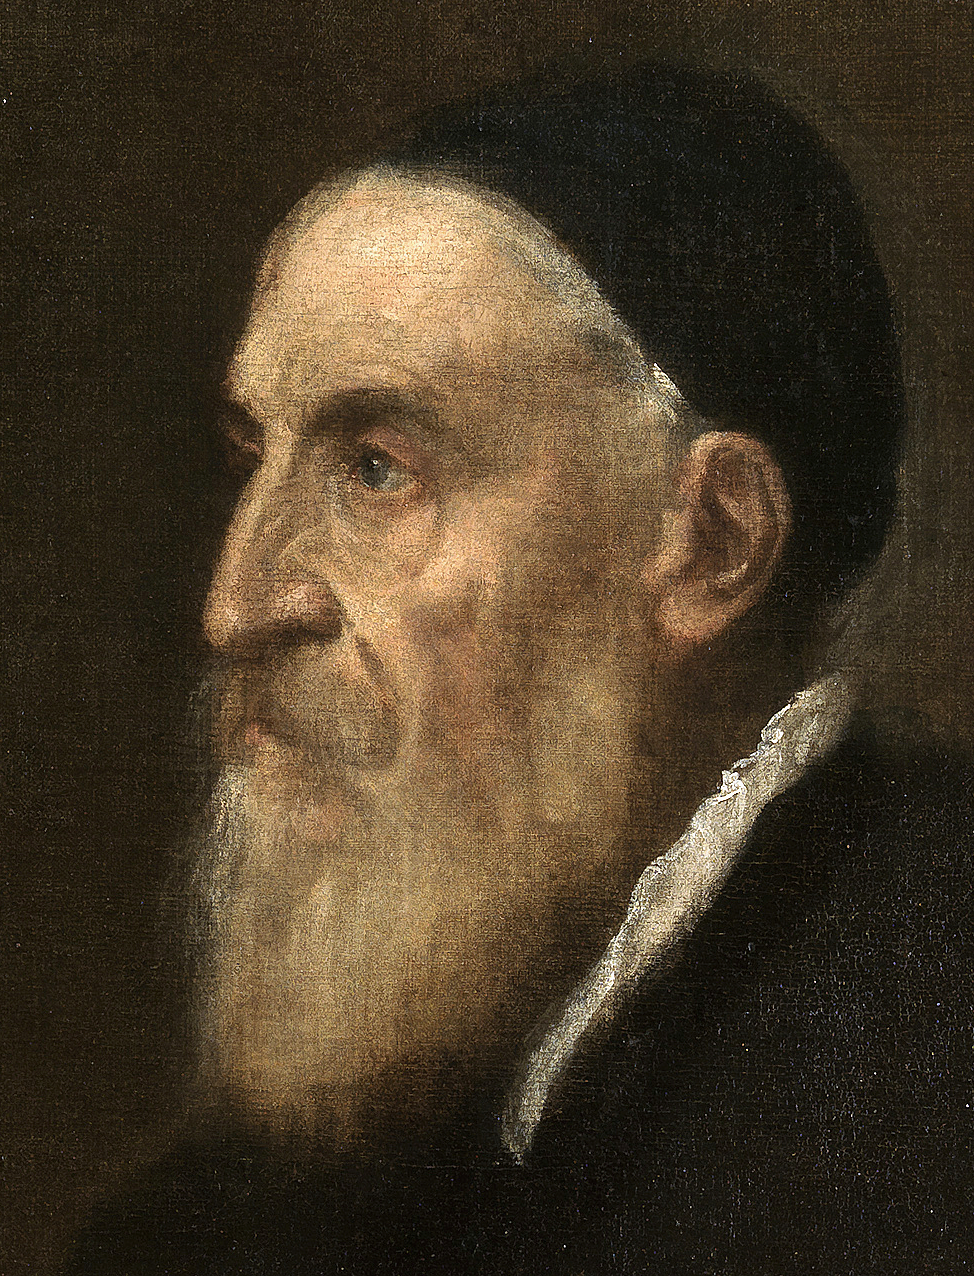 a comparison of tiziano vecellio an italian artist Often hailed as a modern artist, with impressionistic tendencies, tiziano vecellio, known as titian, has been revered for centuries as a pioneering painter.